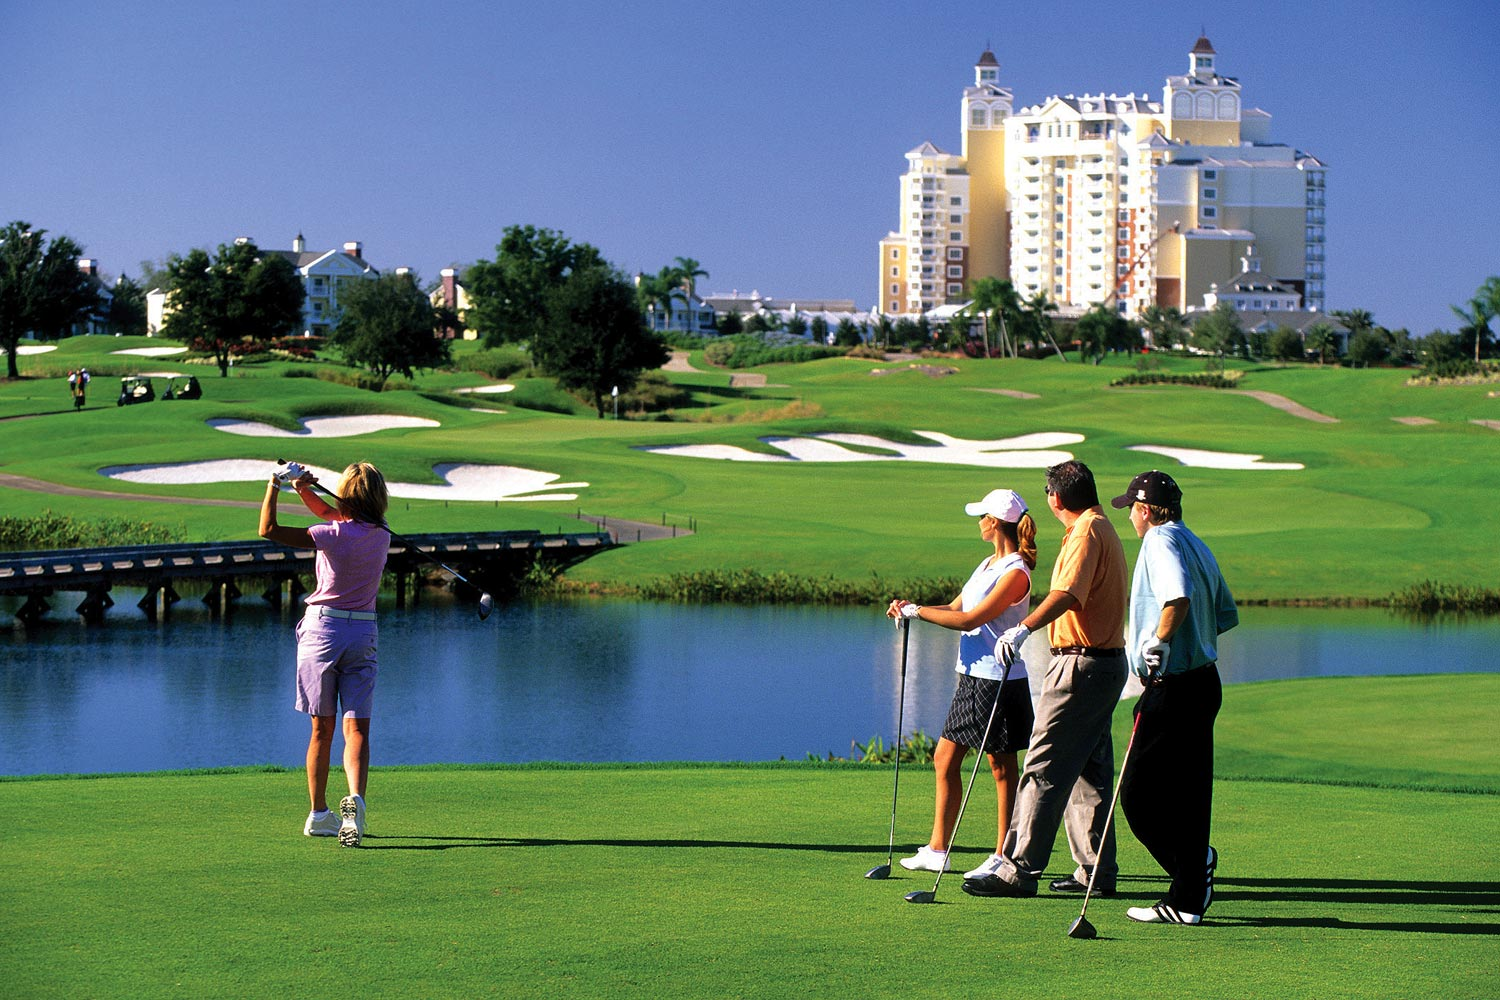 What Are Some Great Luxury Rental Communities In Orlando For Golfers?